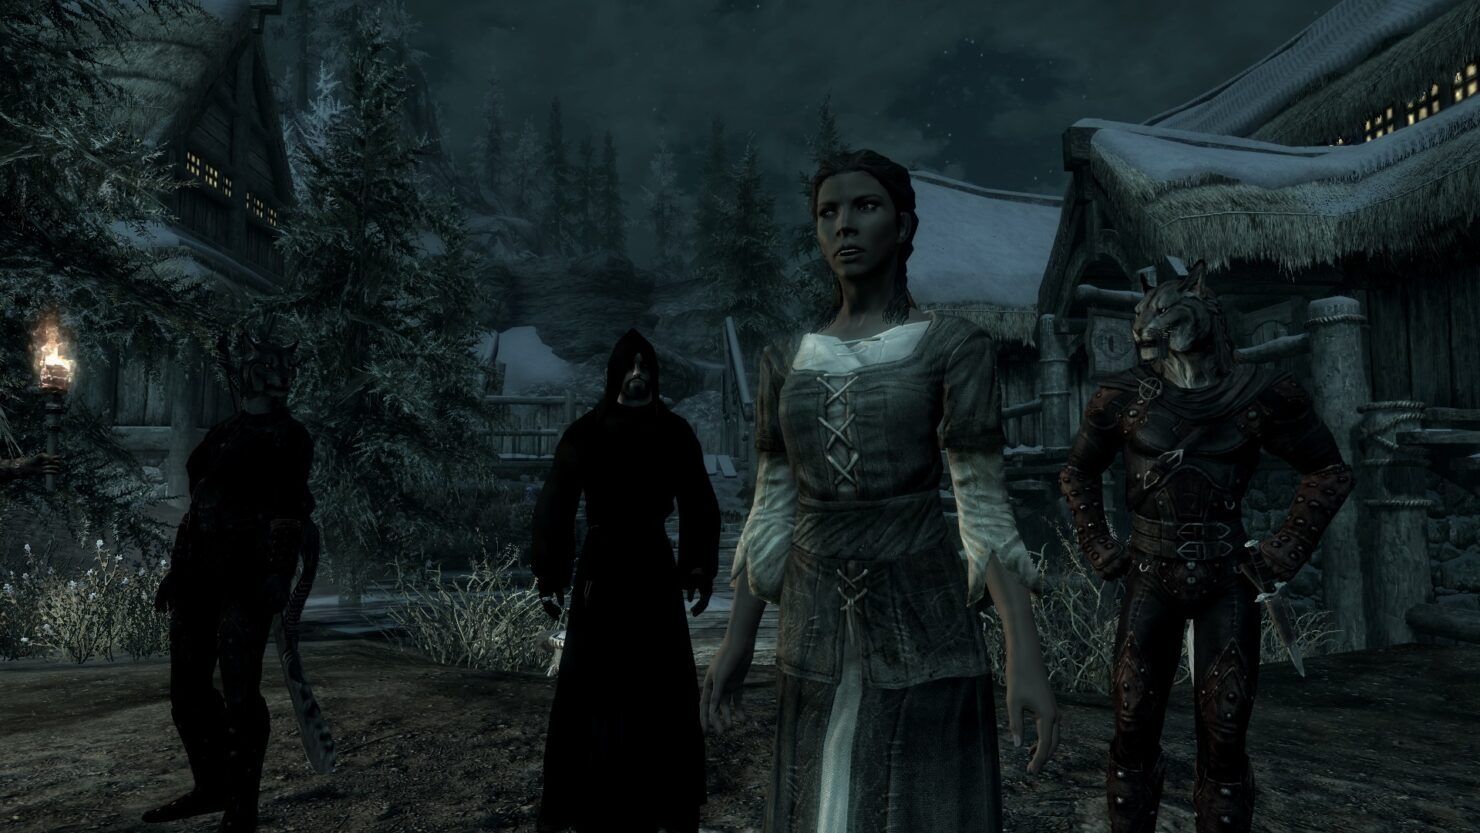 skyrim-the-brotherhood-of-old-quest-mod-9